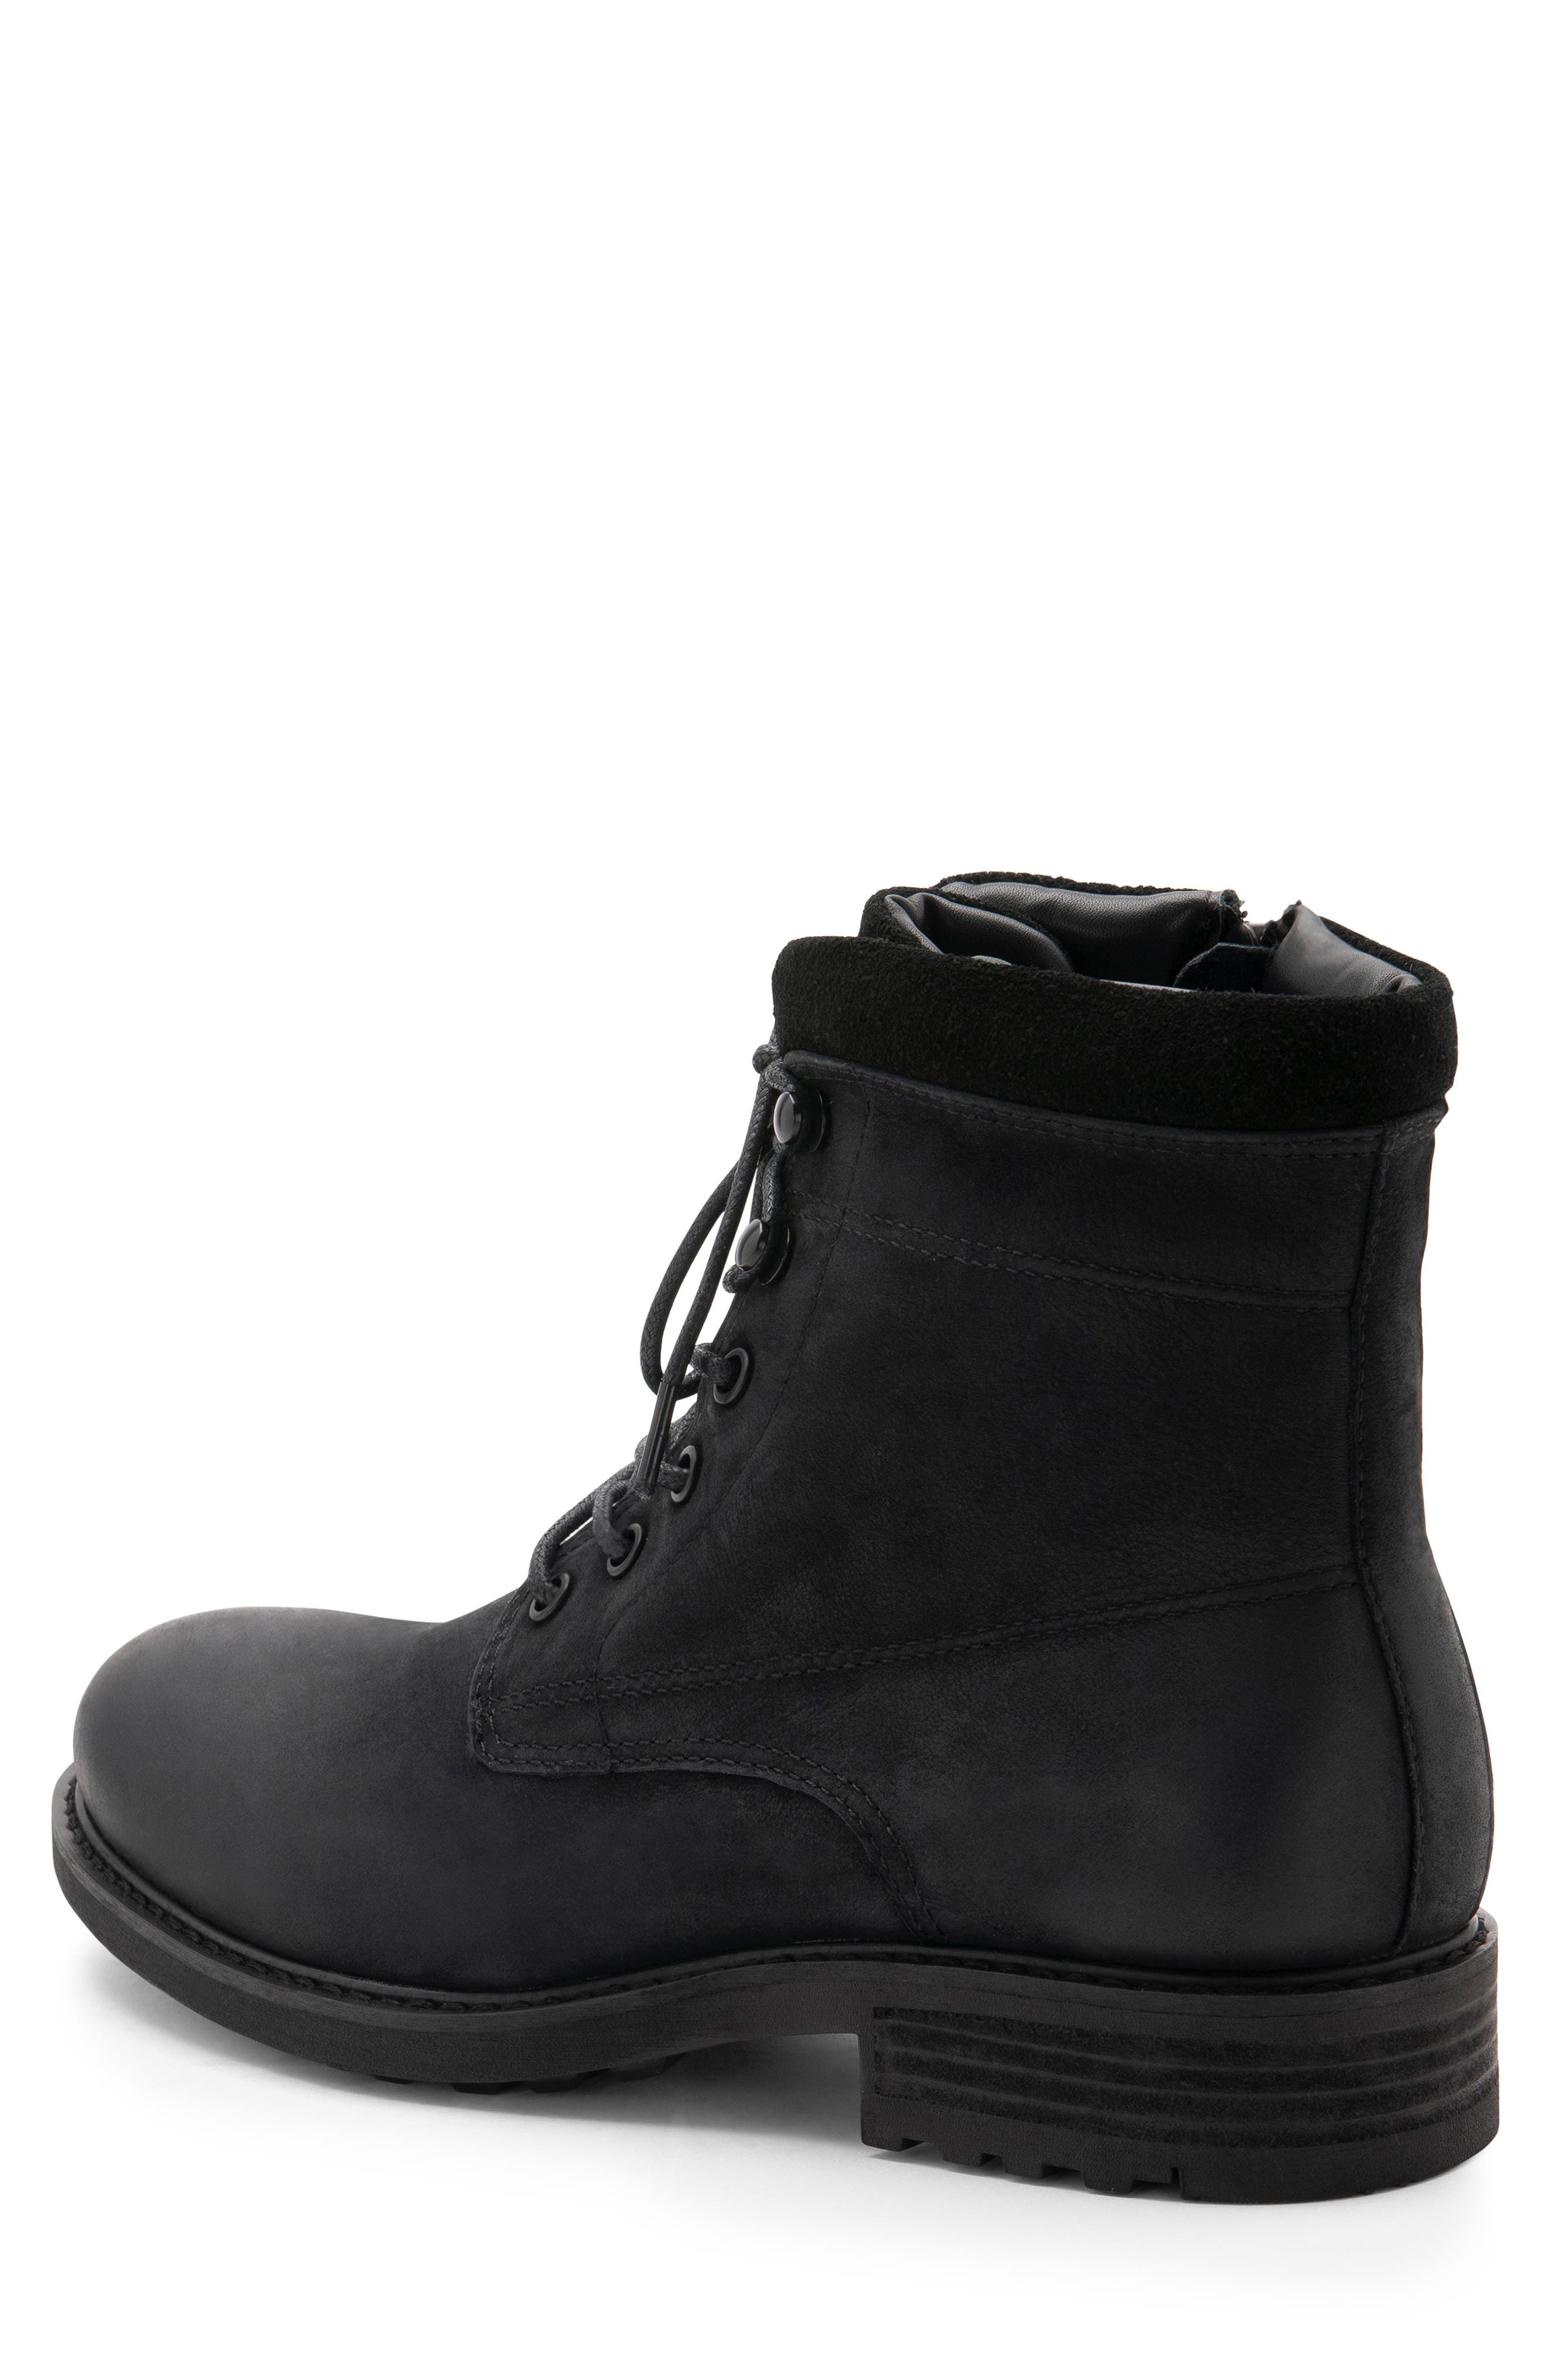 BLONDO, Patton Waterproof Plain Toe Boot, Alternate thumbnail 2, color, BLACK NUBUCK